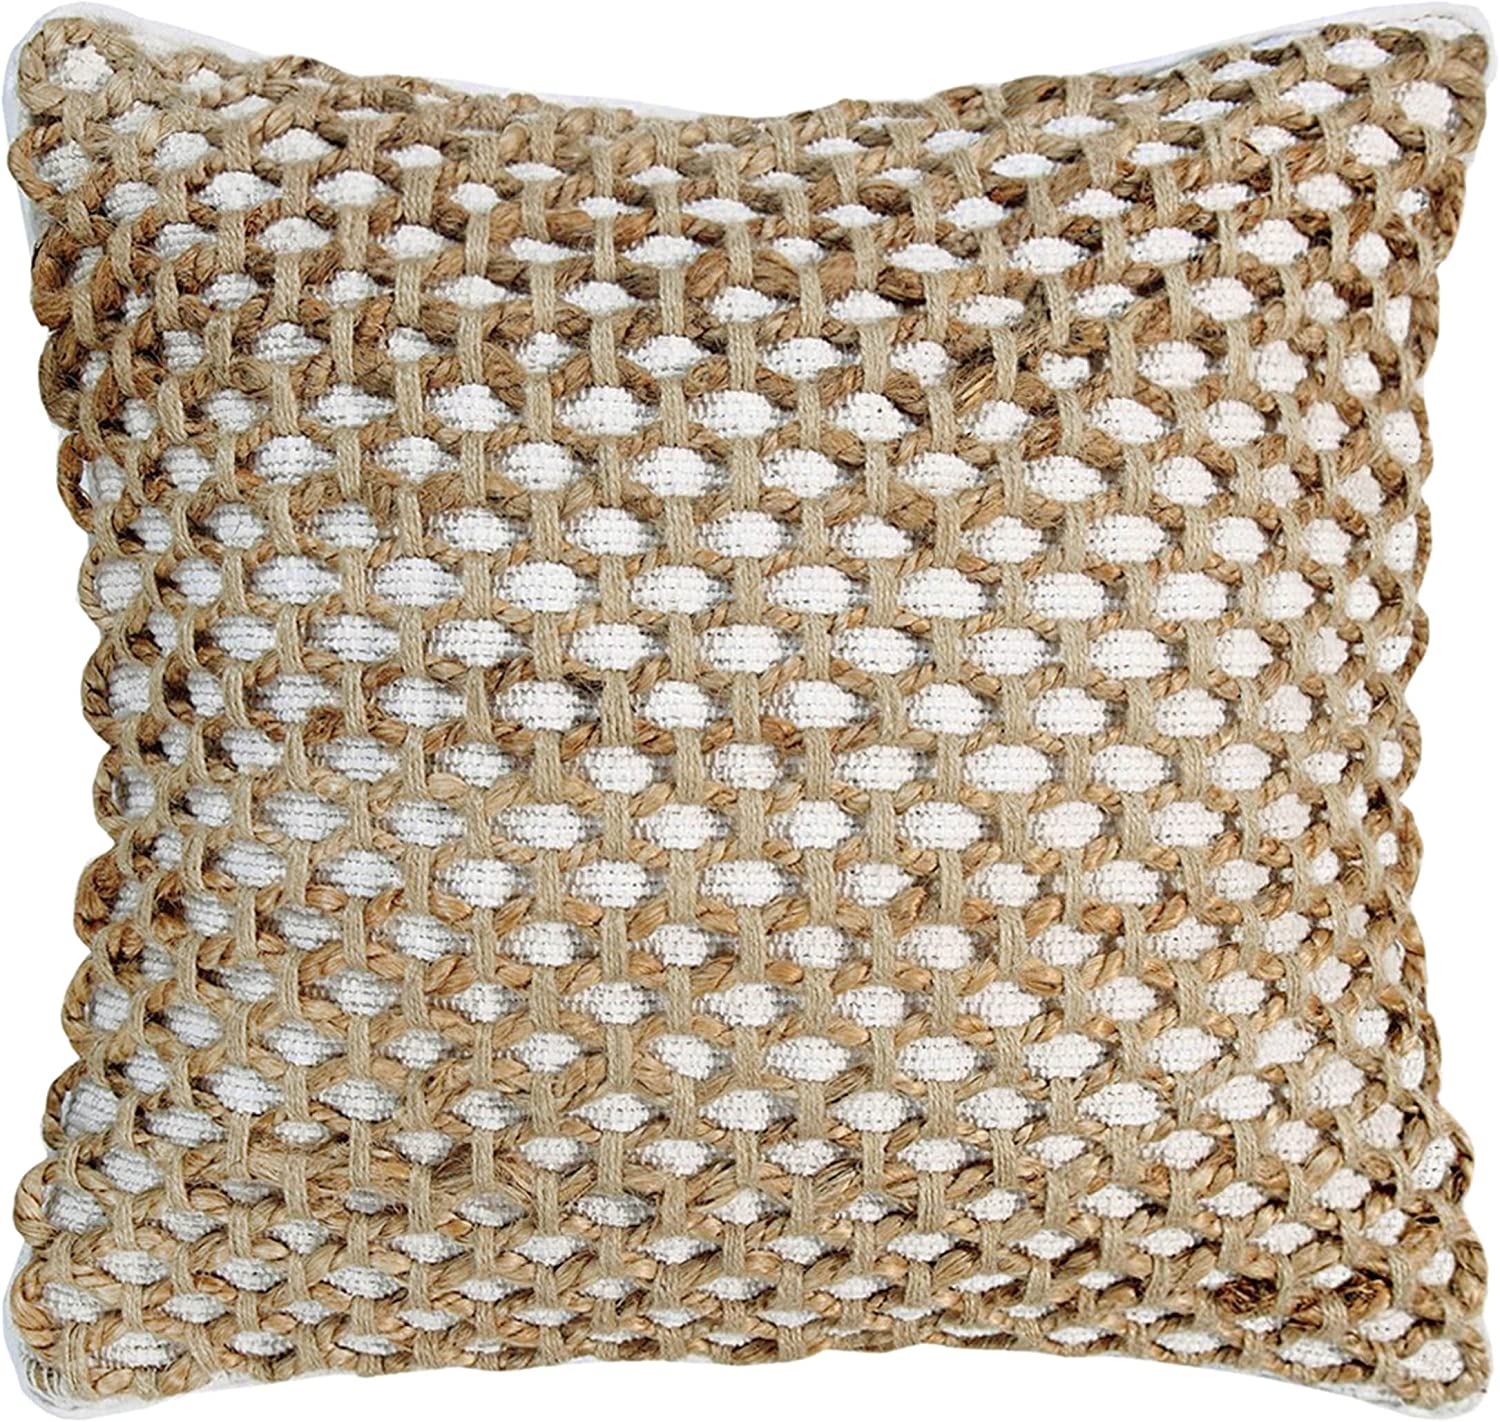 Boho Living Jada Decorative Pillow, White Pillows, 20 in x 20 in x 6.5 2 Count